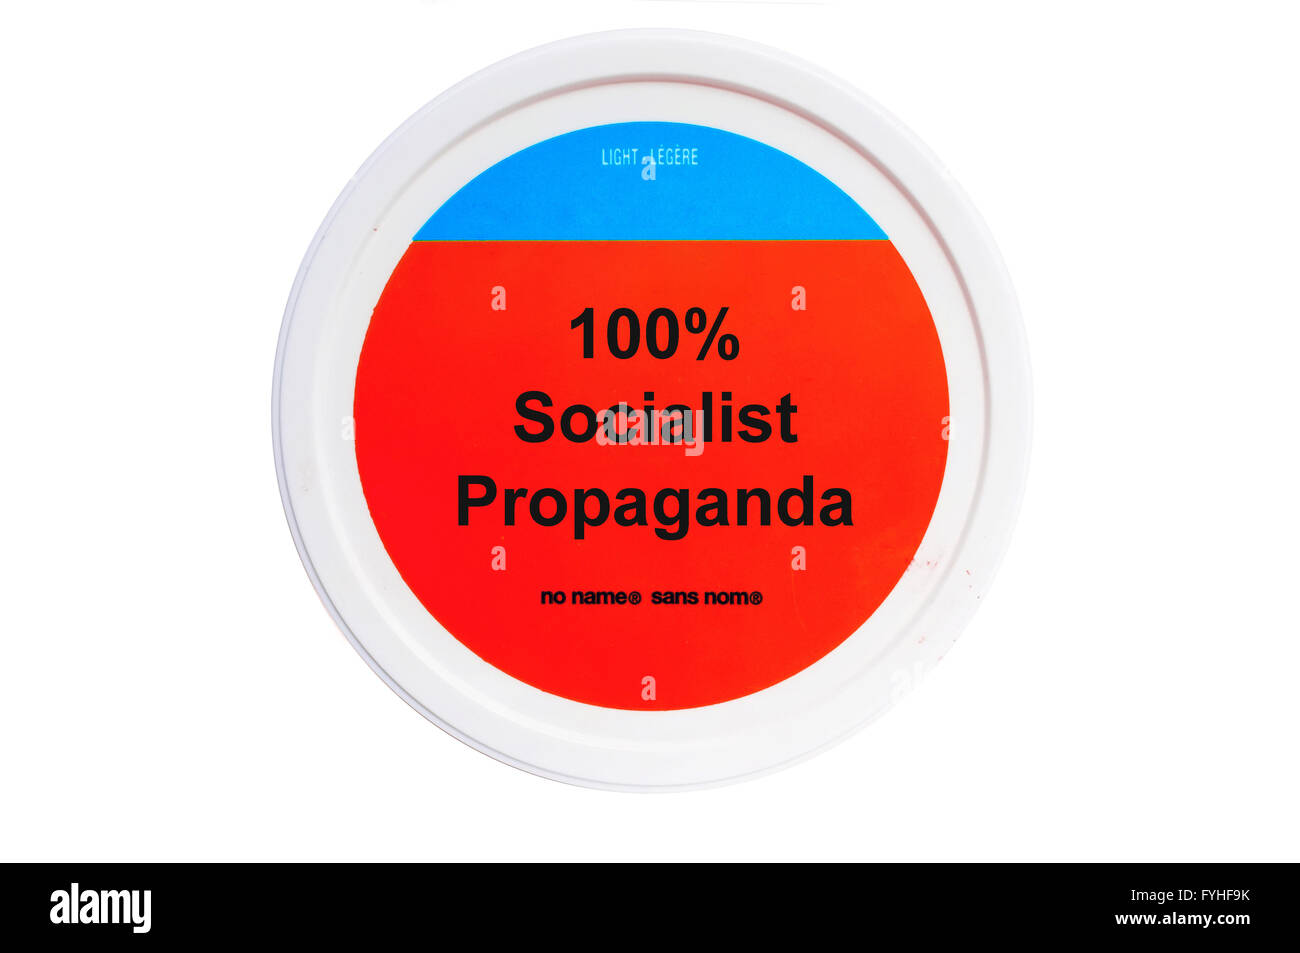 A tub with 100% Socialist Propaganda written on the label photographed against a white background. - Stock Image